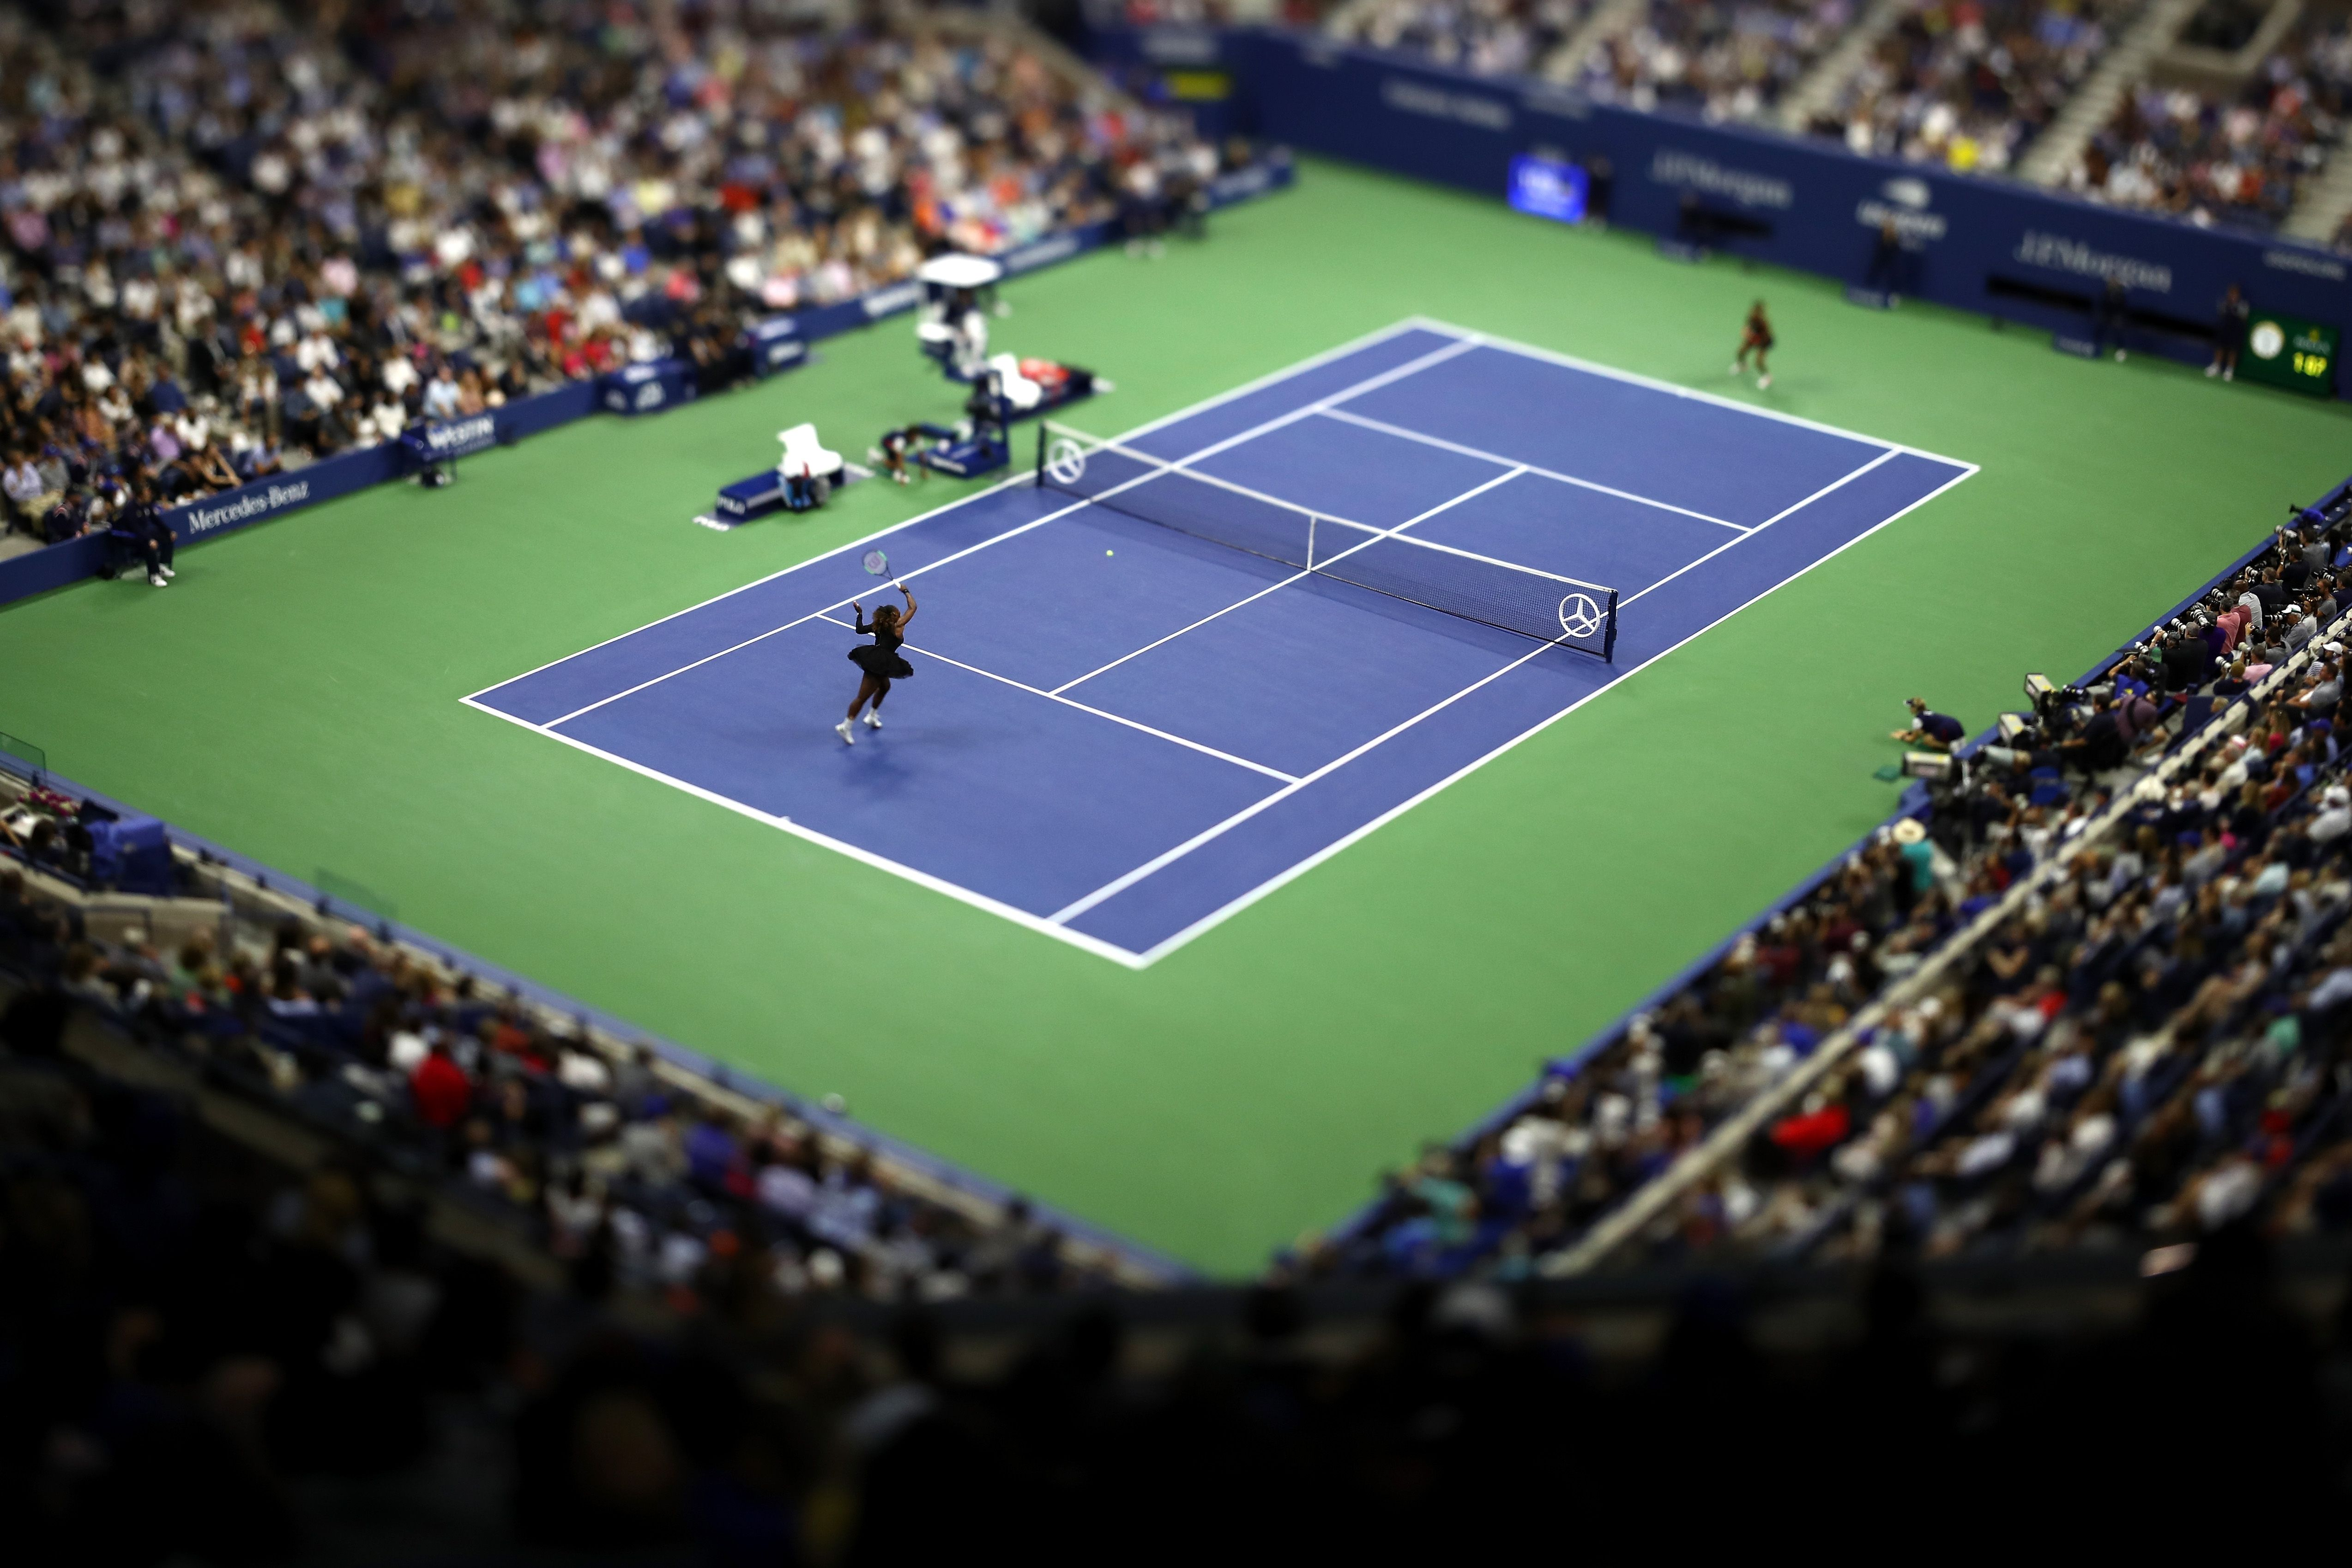 U S Open 2019 Guide What To Know About Attending The Us Open In Ny